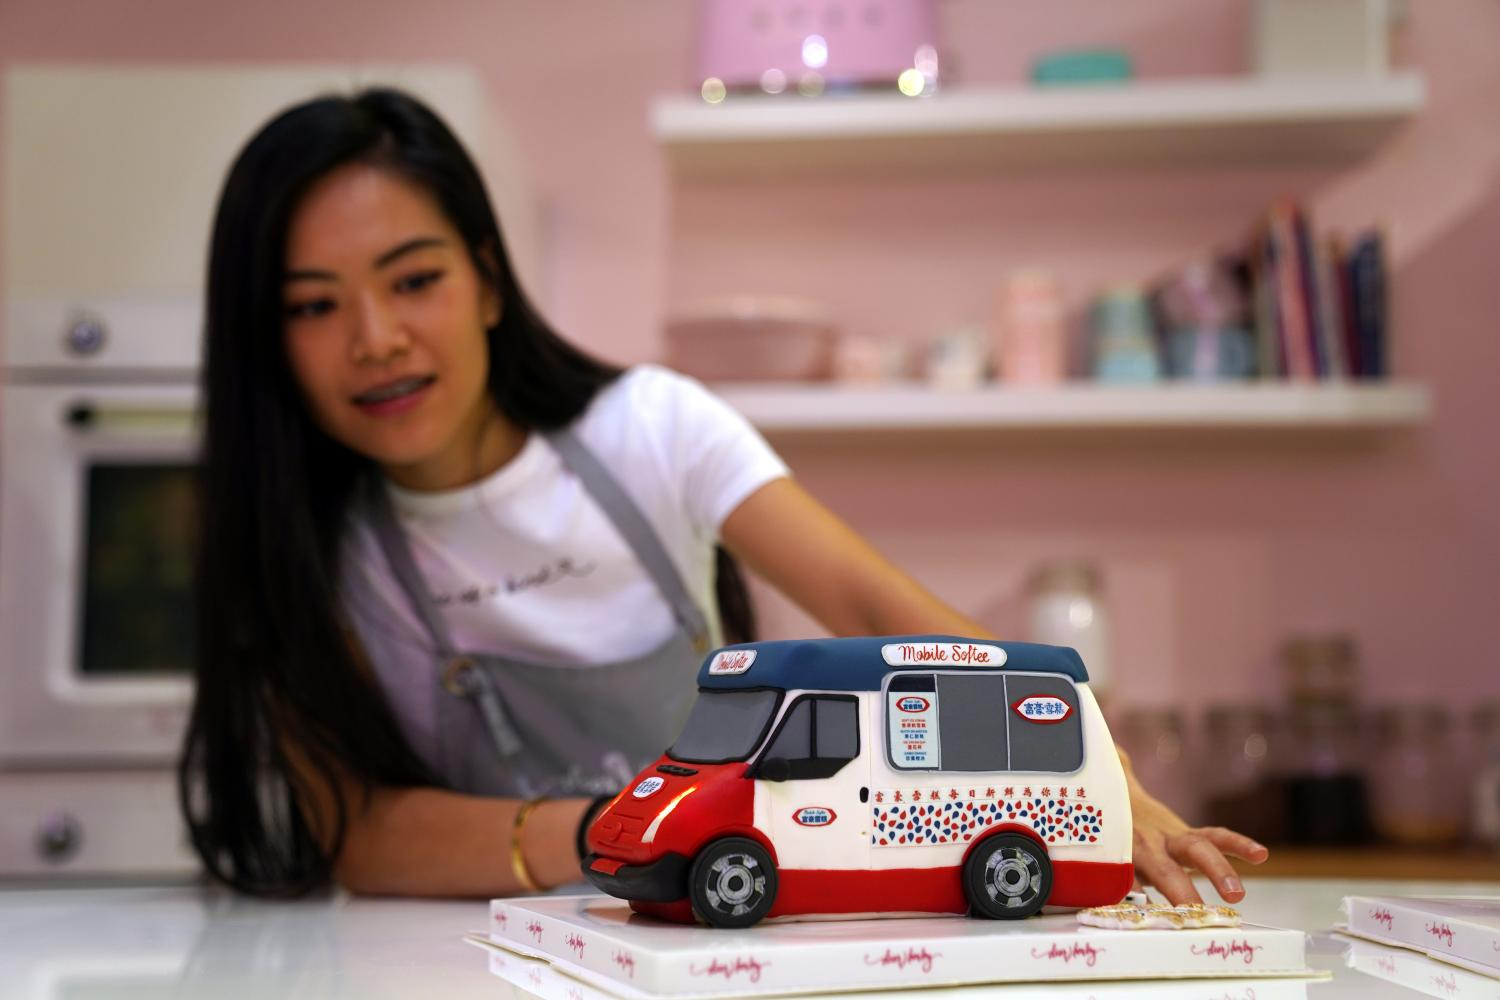 Alison Chan, co-owner of Dear Harley Cake Studio, shows one of the illusion cakes.(Reuters photo)